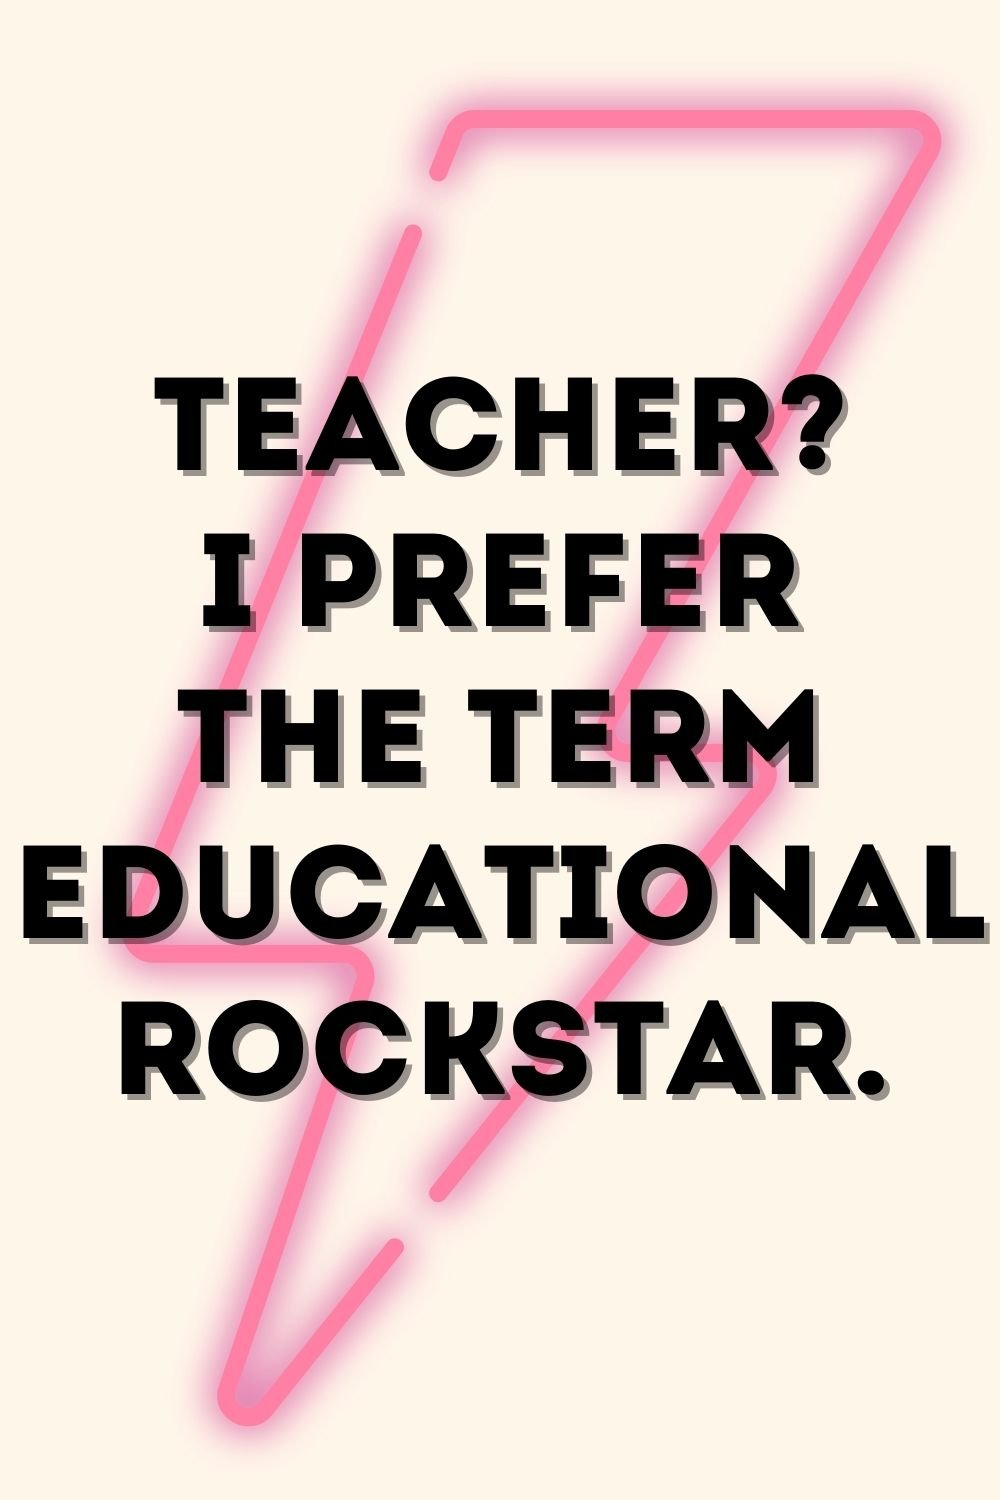 Teacher Quotes to Make You Laugh